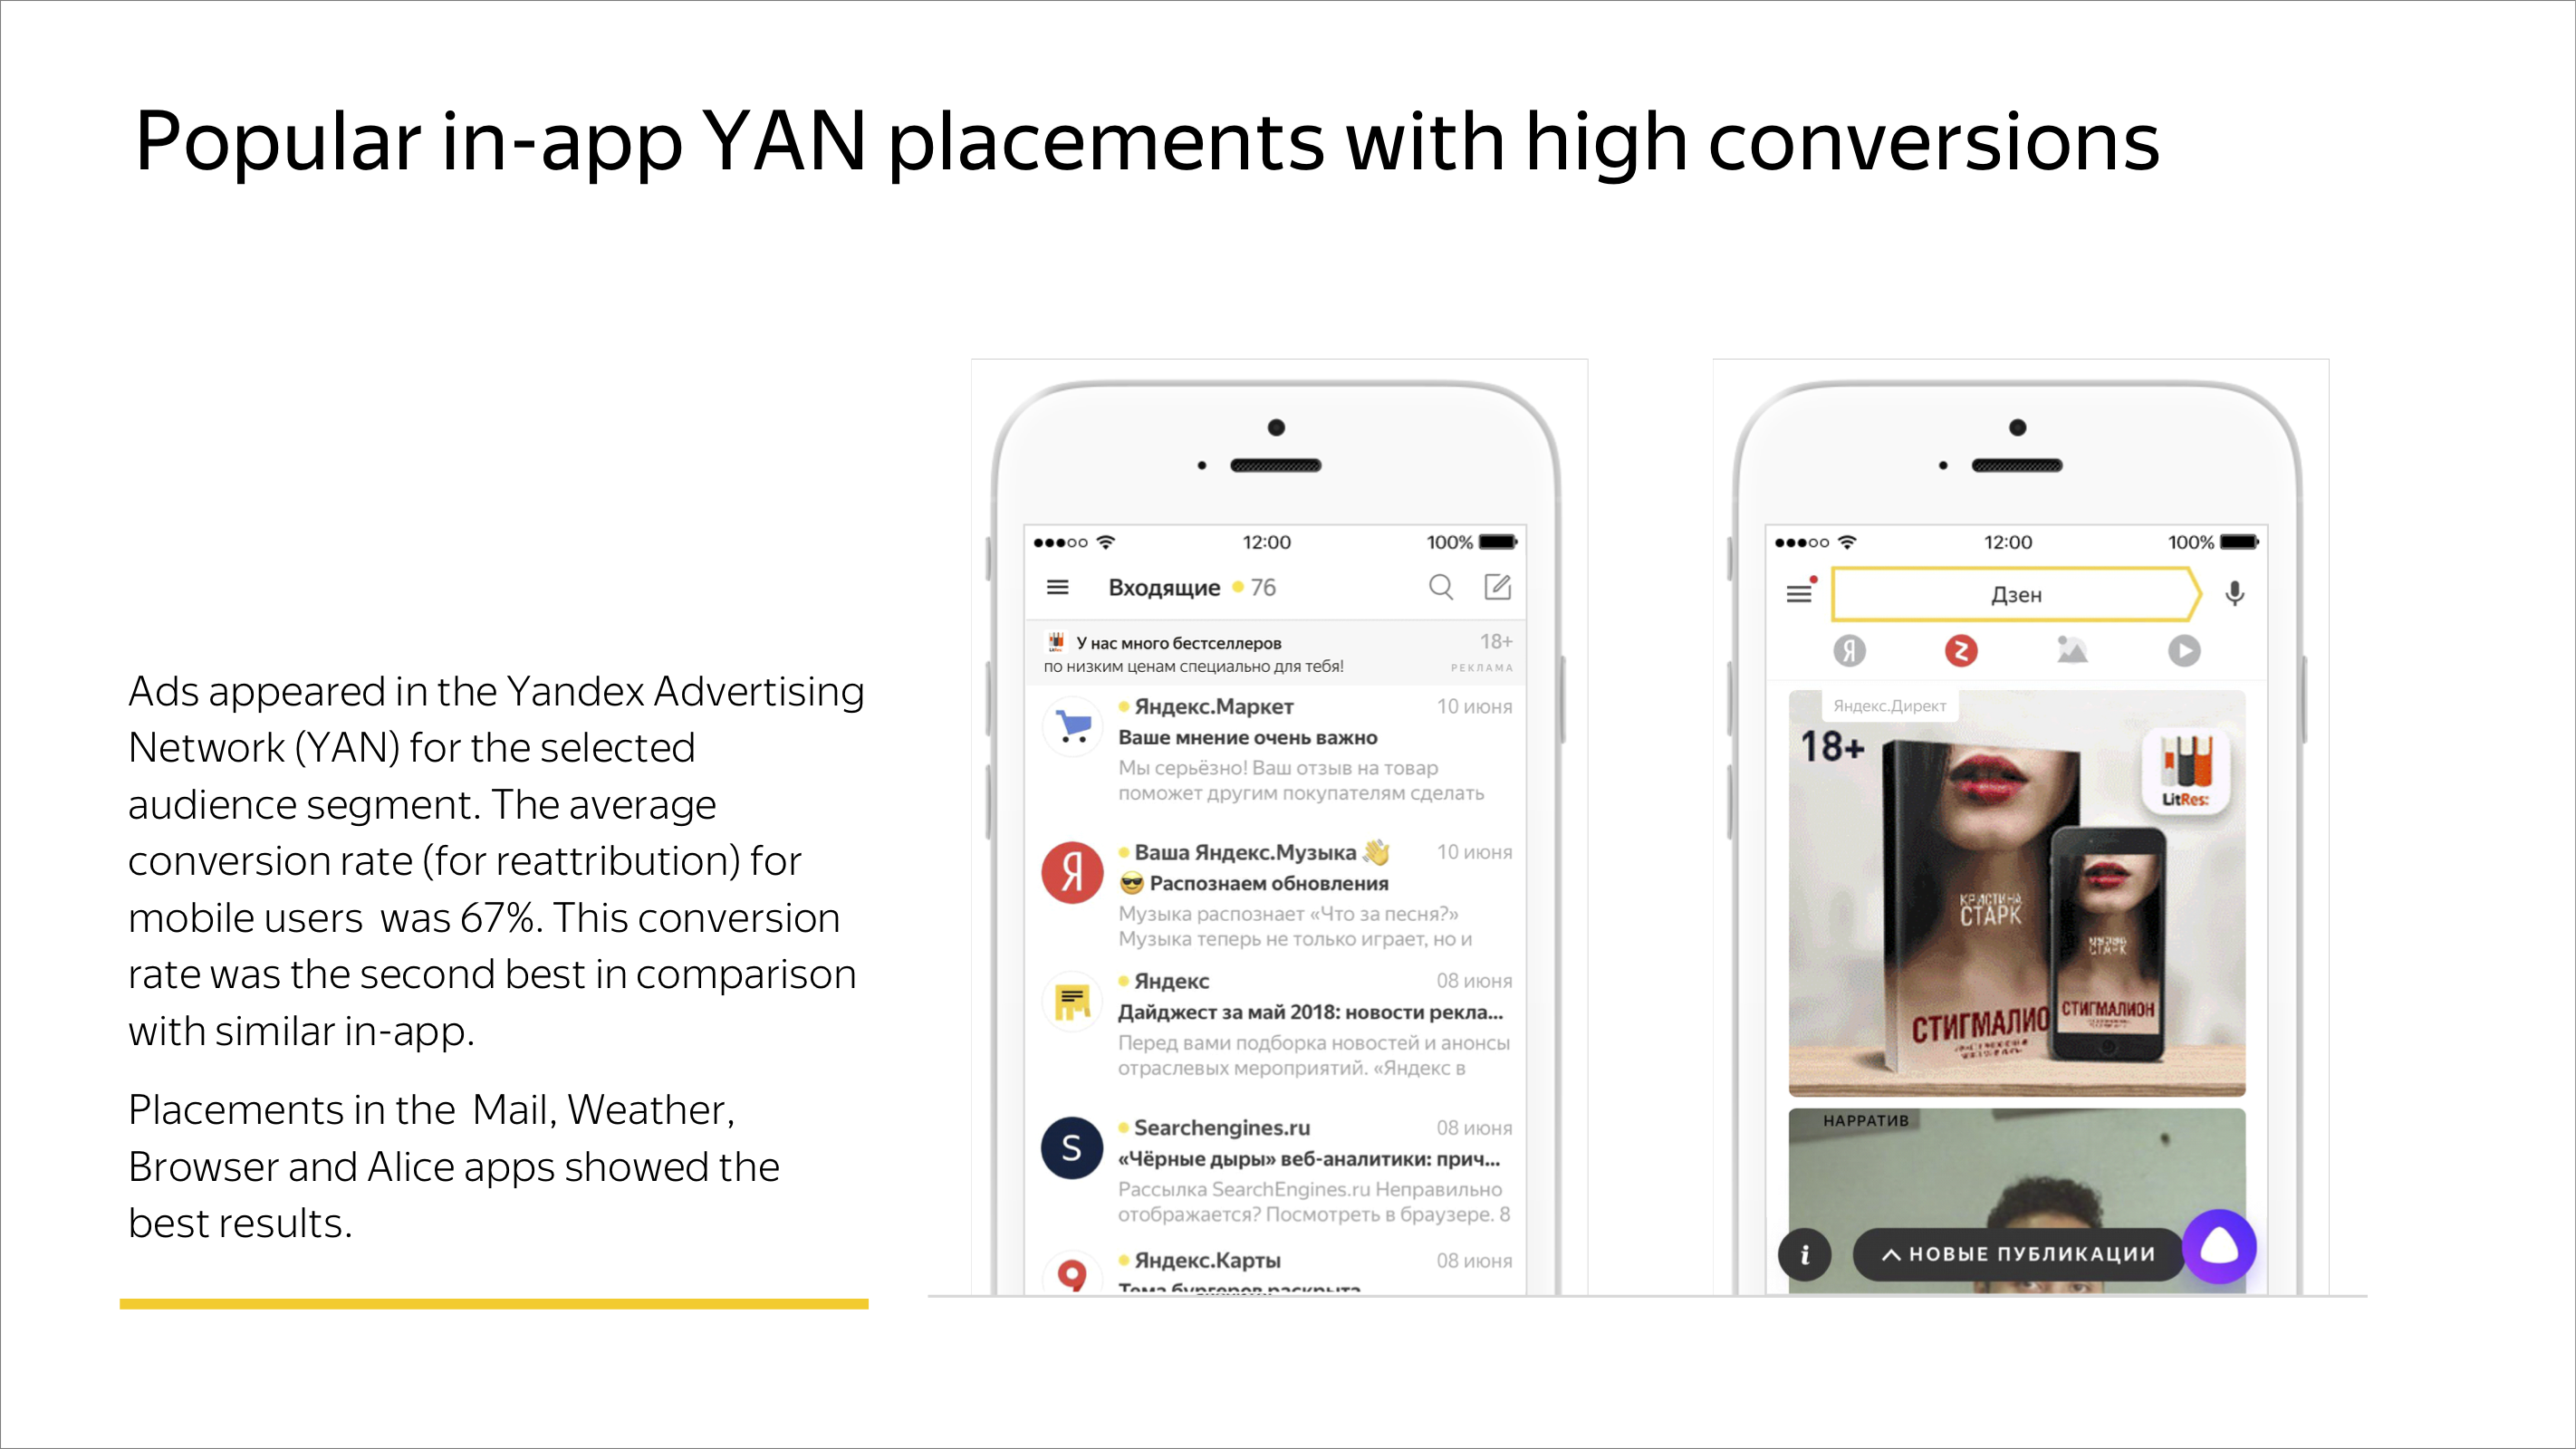 Popular in-app YAN placements with high conversions